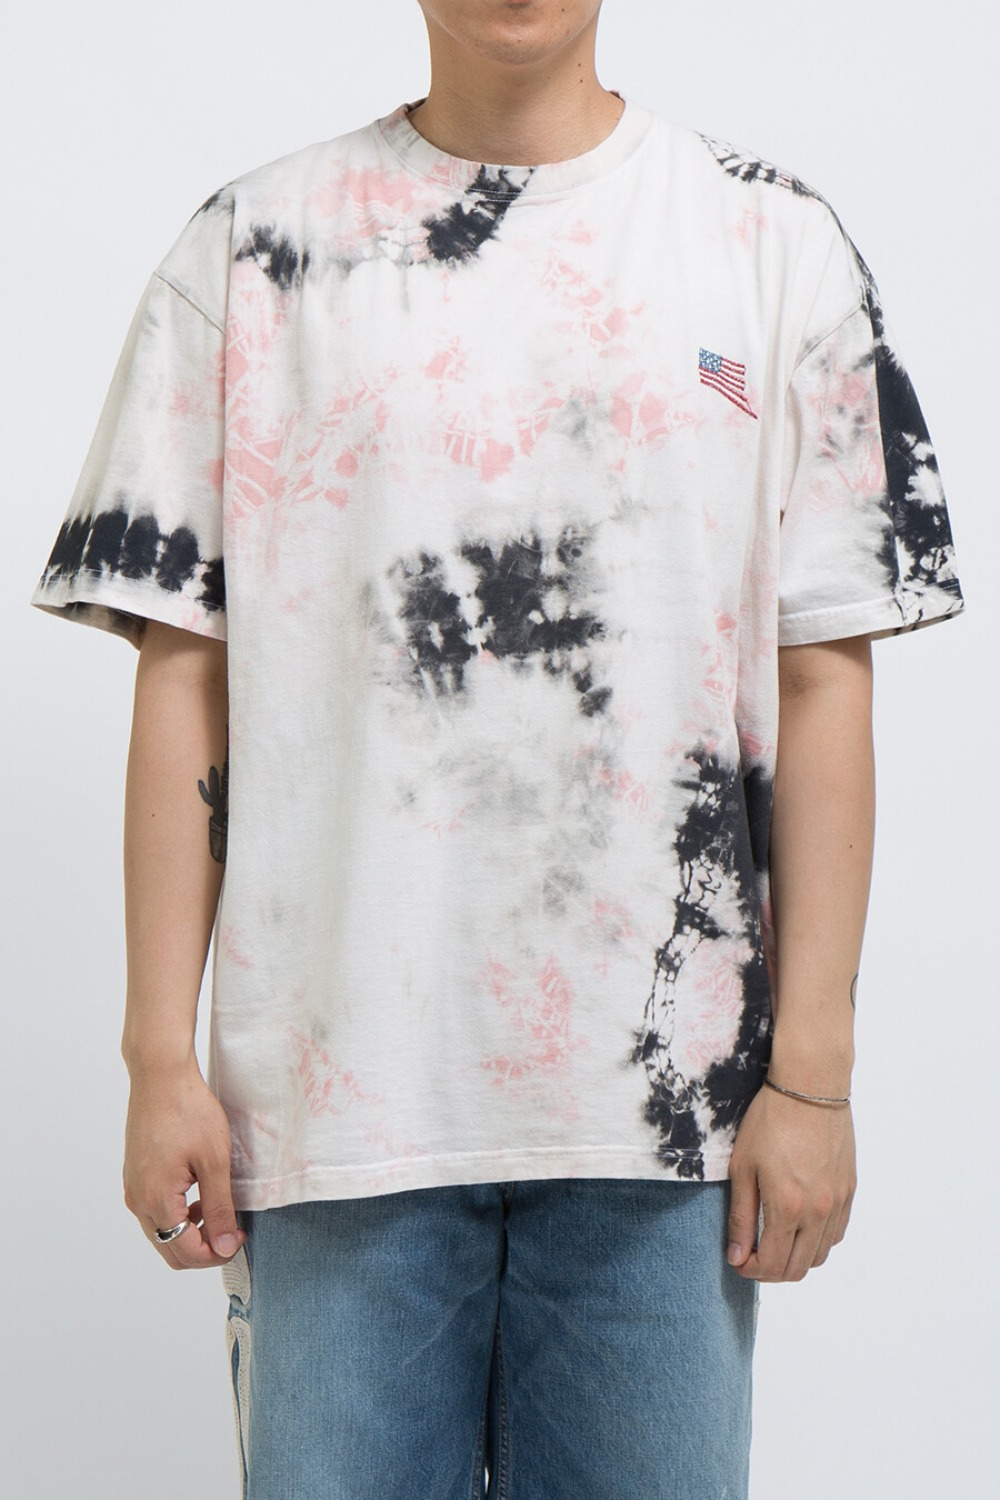 JERSEY BONE BIG-T(ASHBURY DYED) BLACK/PINK